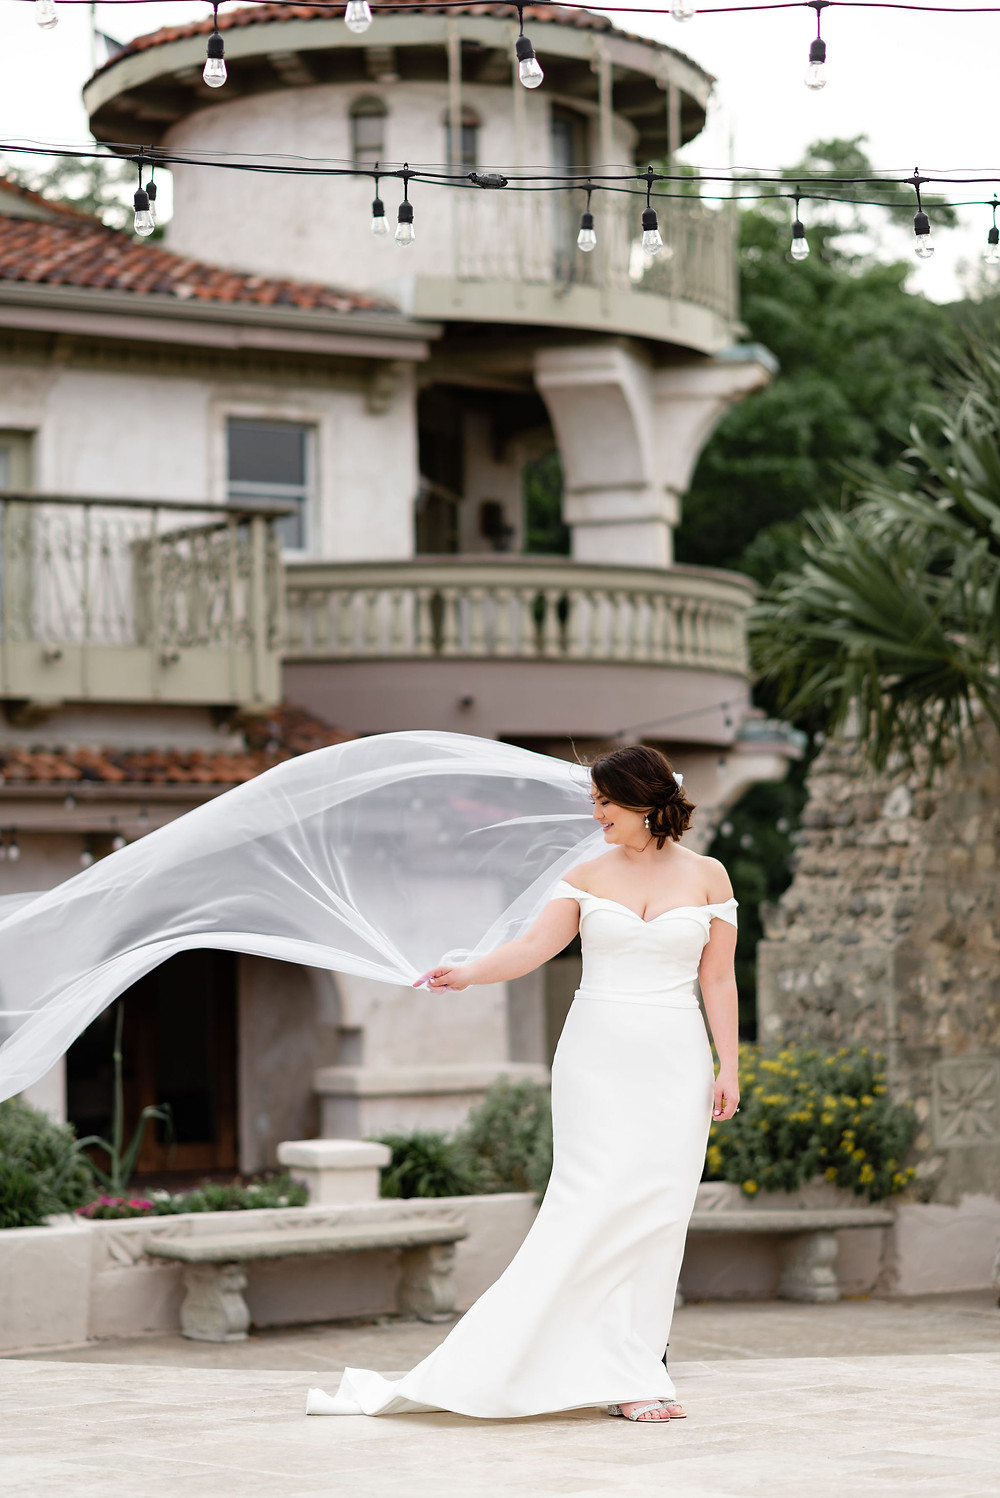 bridal portrait in the courtyard entry of villa antonia with venue in background. wind is blowing the veil and the bride is holding on to it laughing